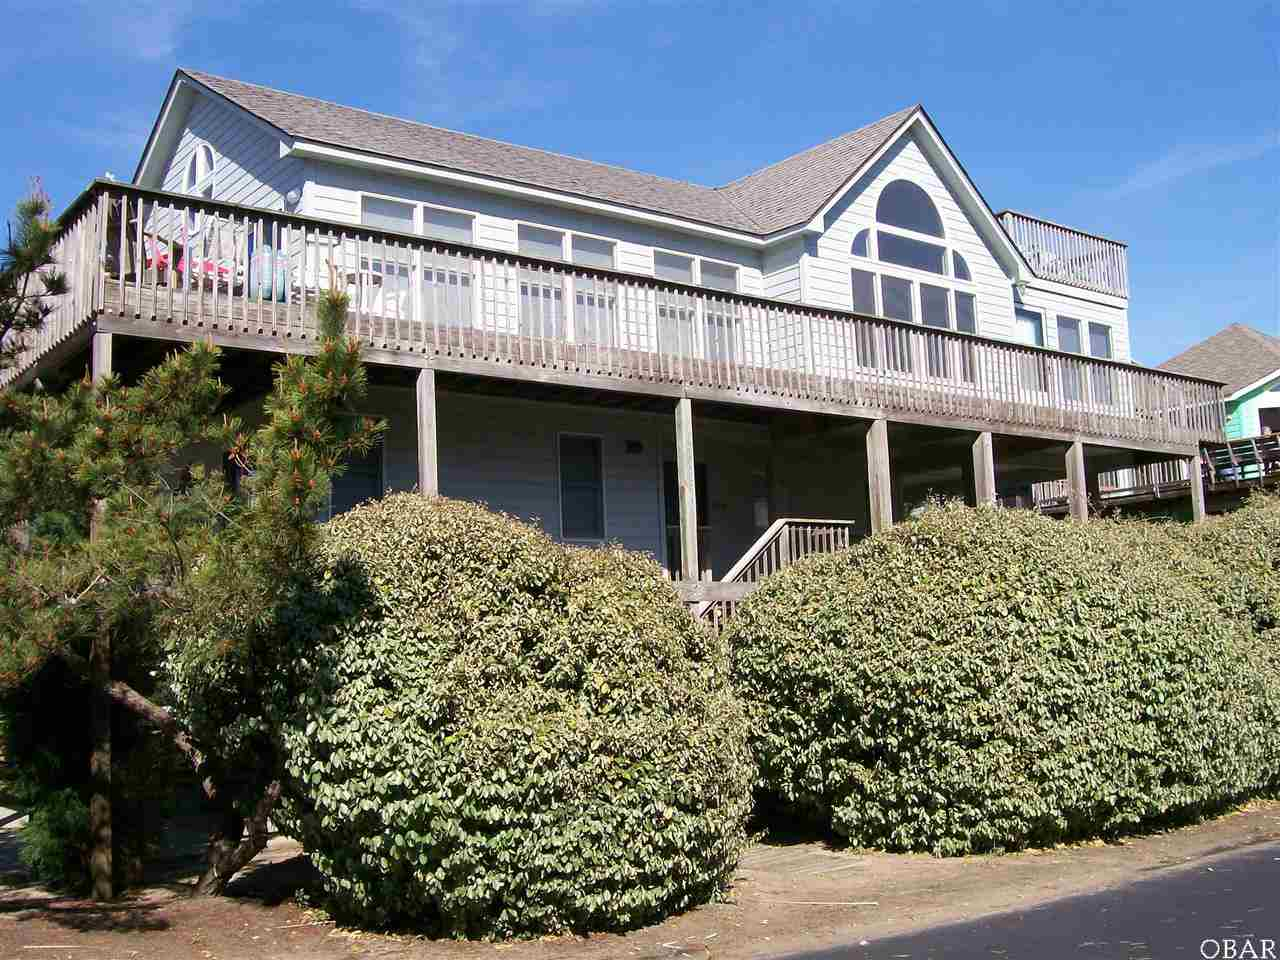 715 Mainsail Arch,Corolla,NC 27927,4 Bedrooms Bedrooms,3 BathroomsBathrooms,Residential,Mainsail Arch,83416